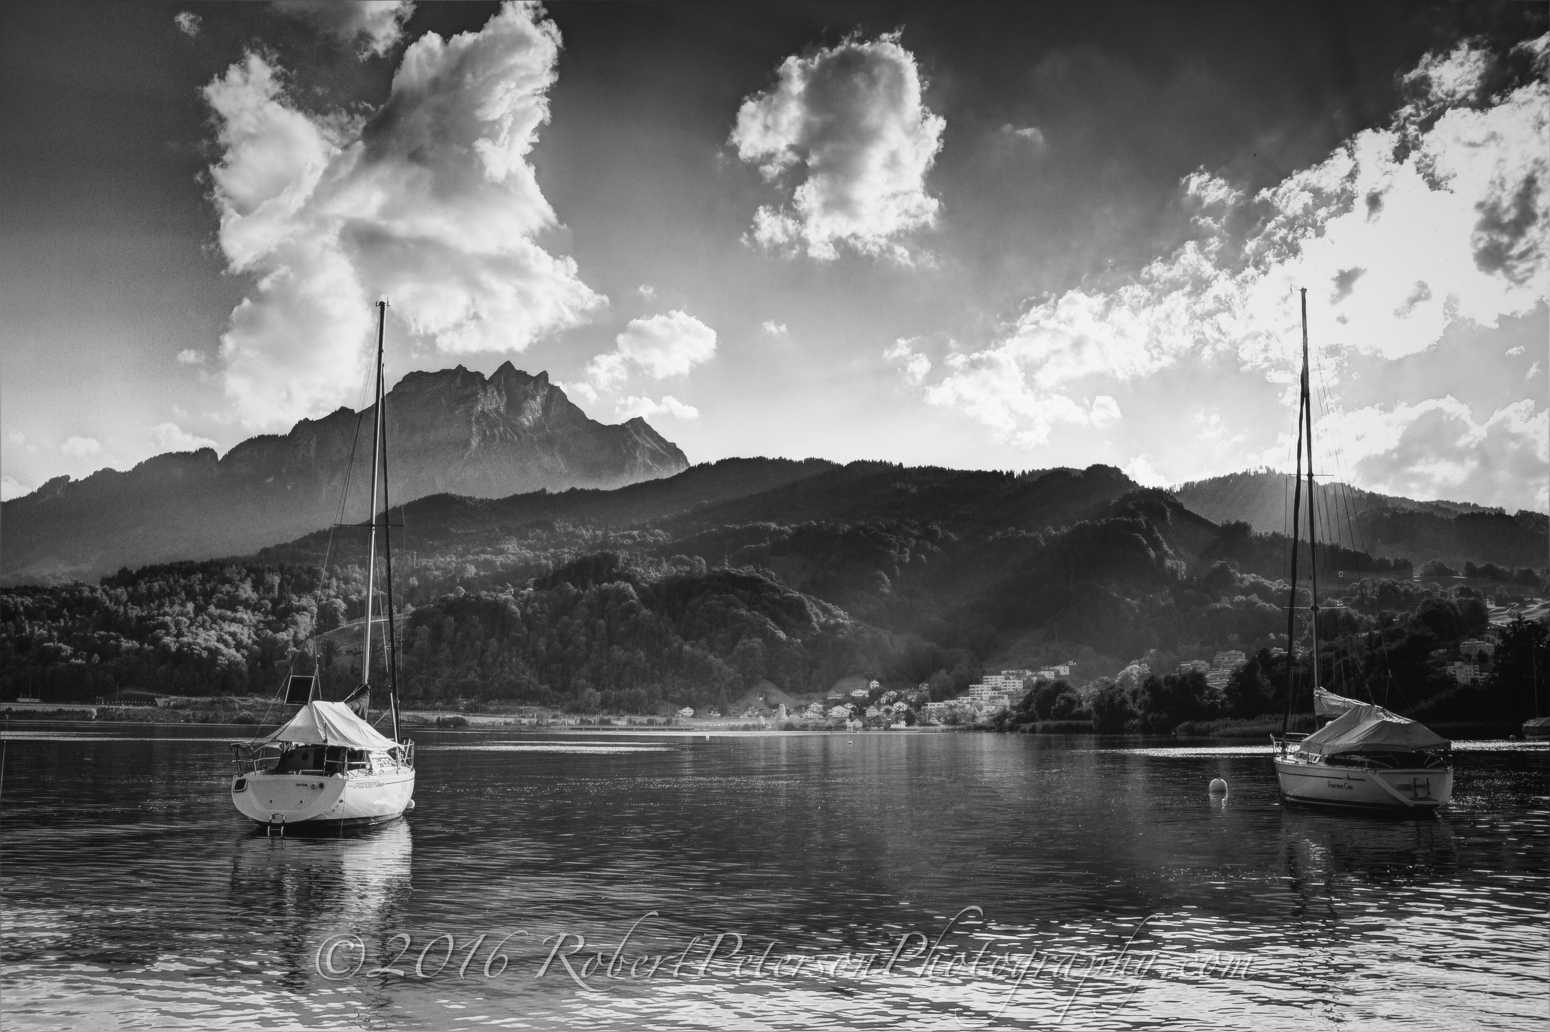 Lake Lucerne Mount Pilatus Sailboats Sunset Black and White Scene Switzerland